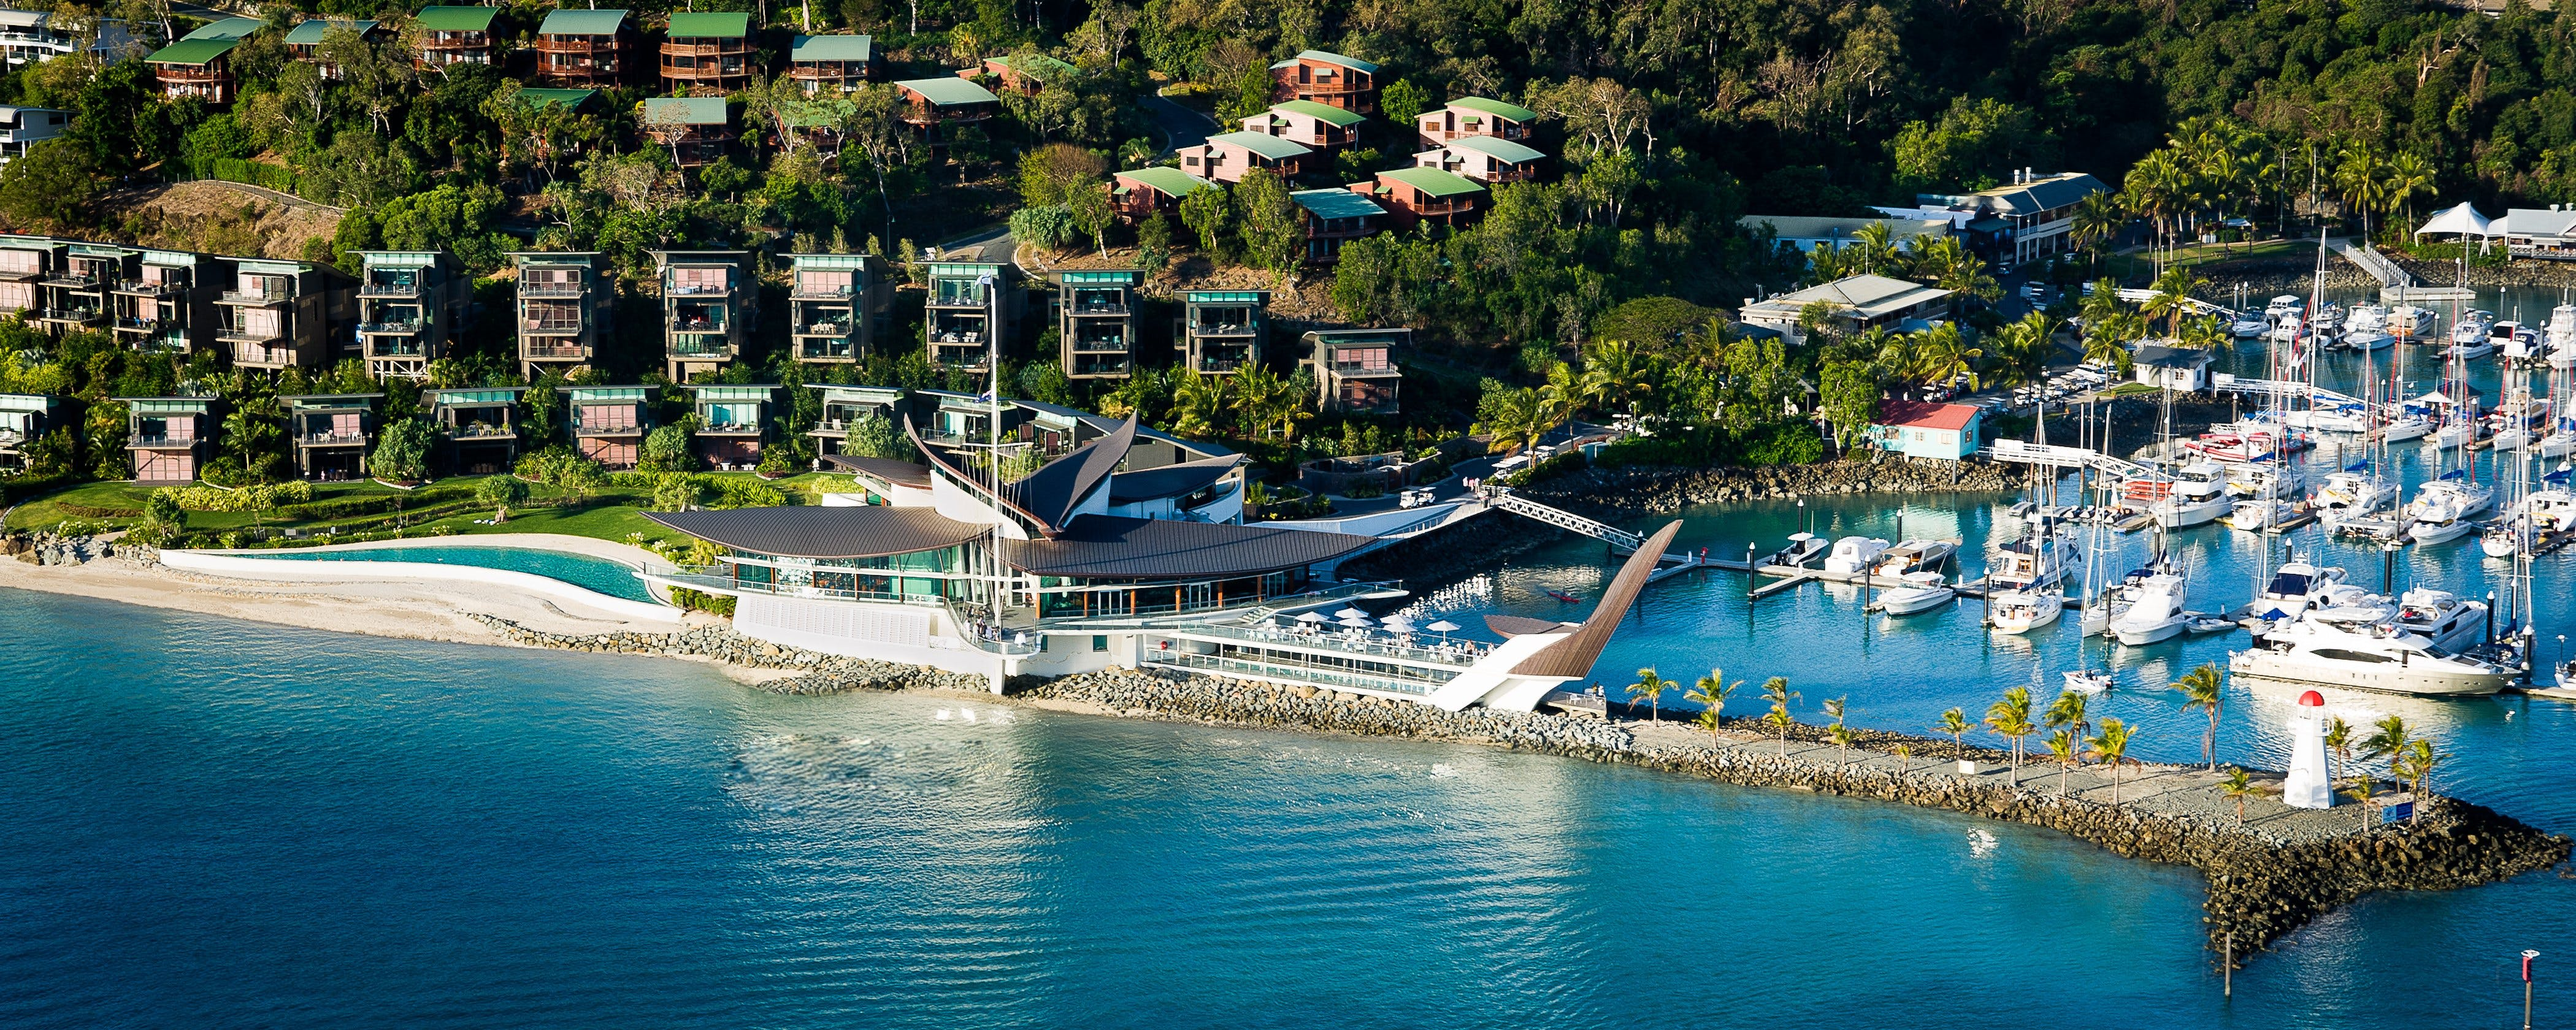 Hamilton Island Yacht Club - Australia Accommodation